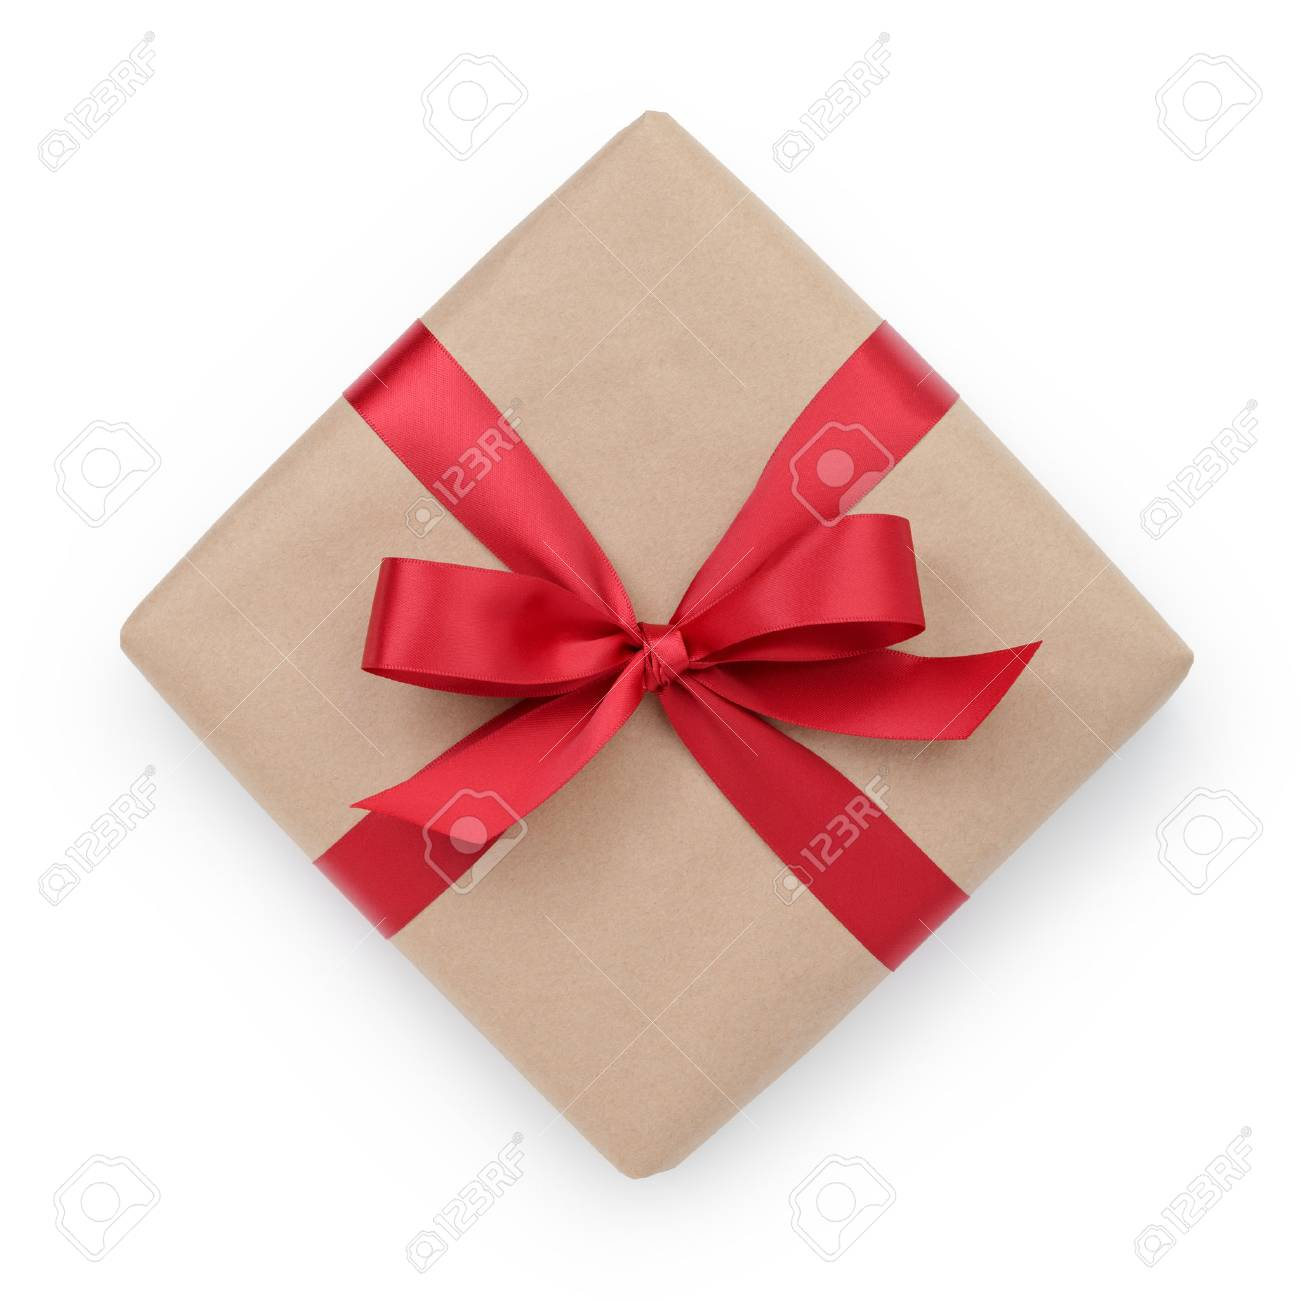 kraft paper gift box with ribbon bow from above, white background - 33870892